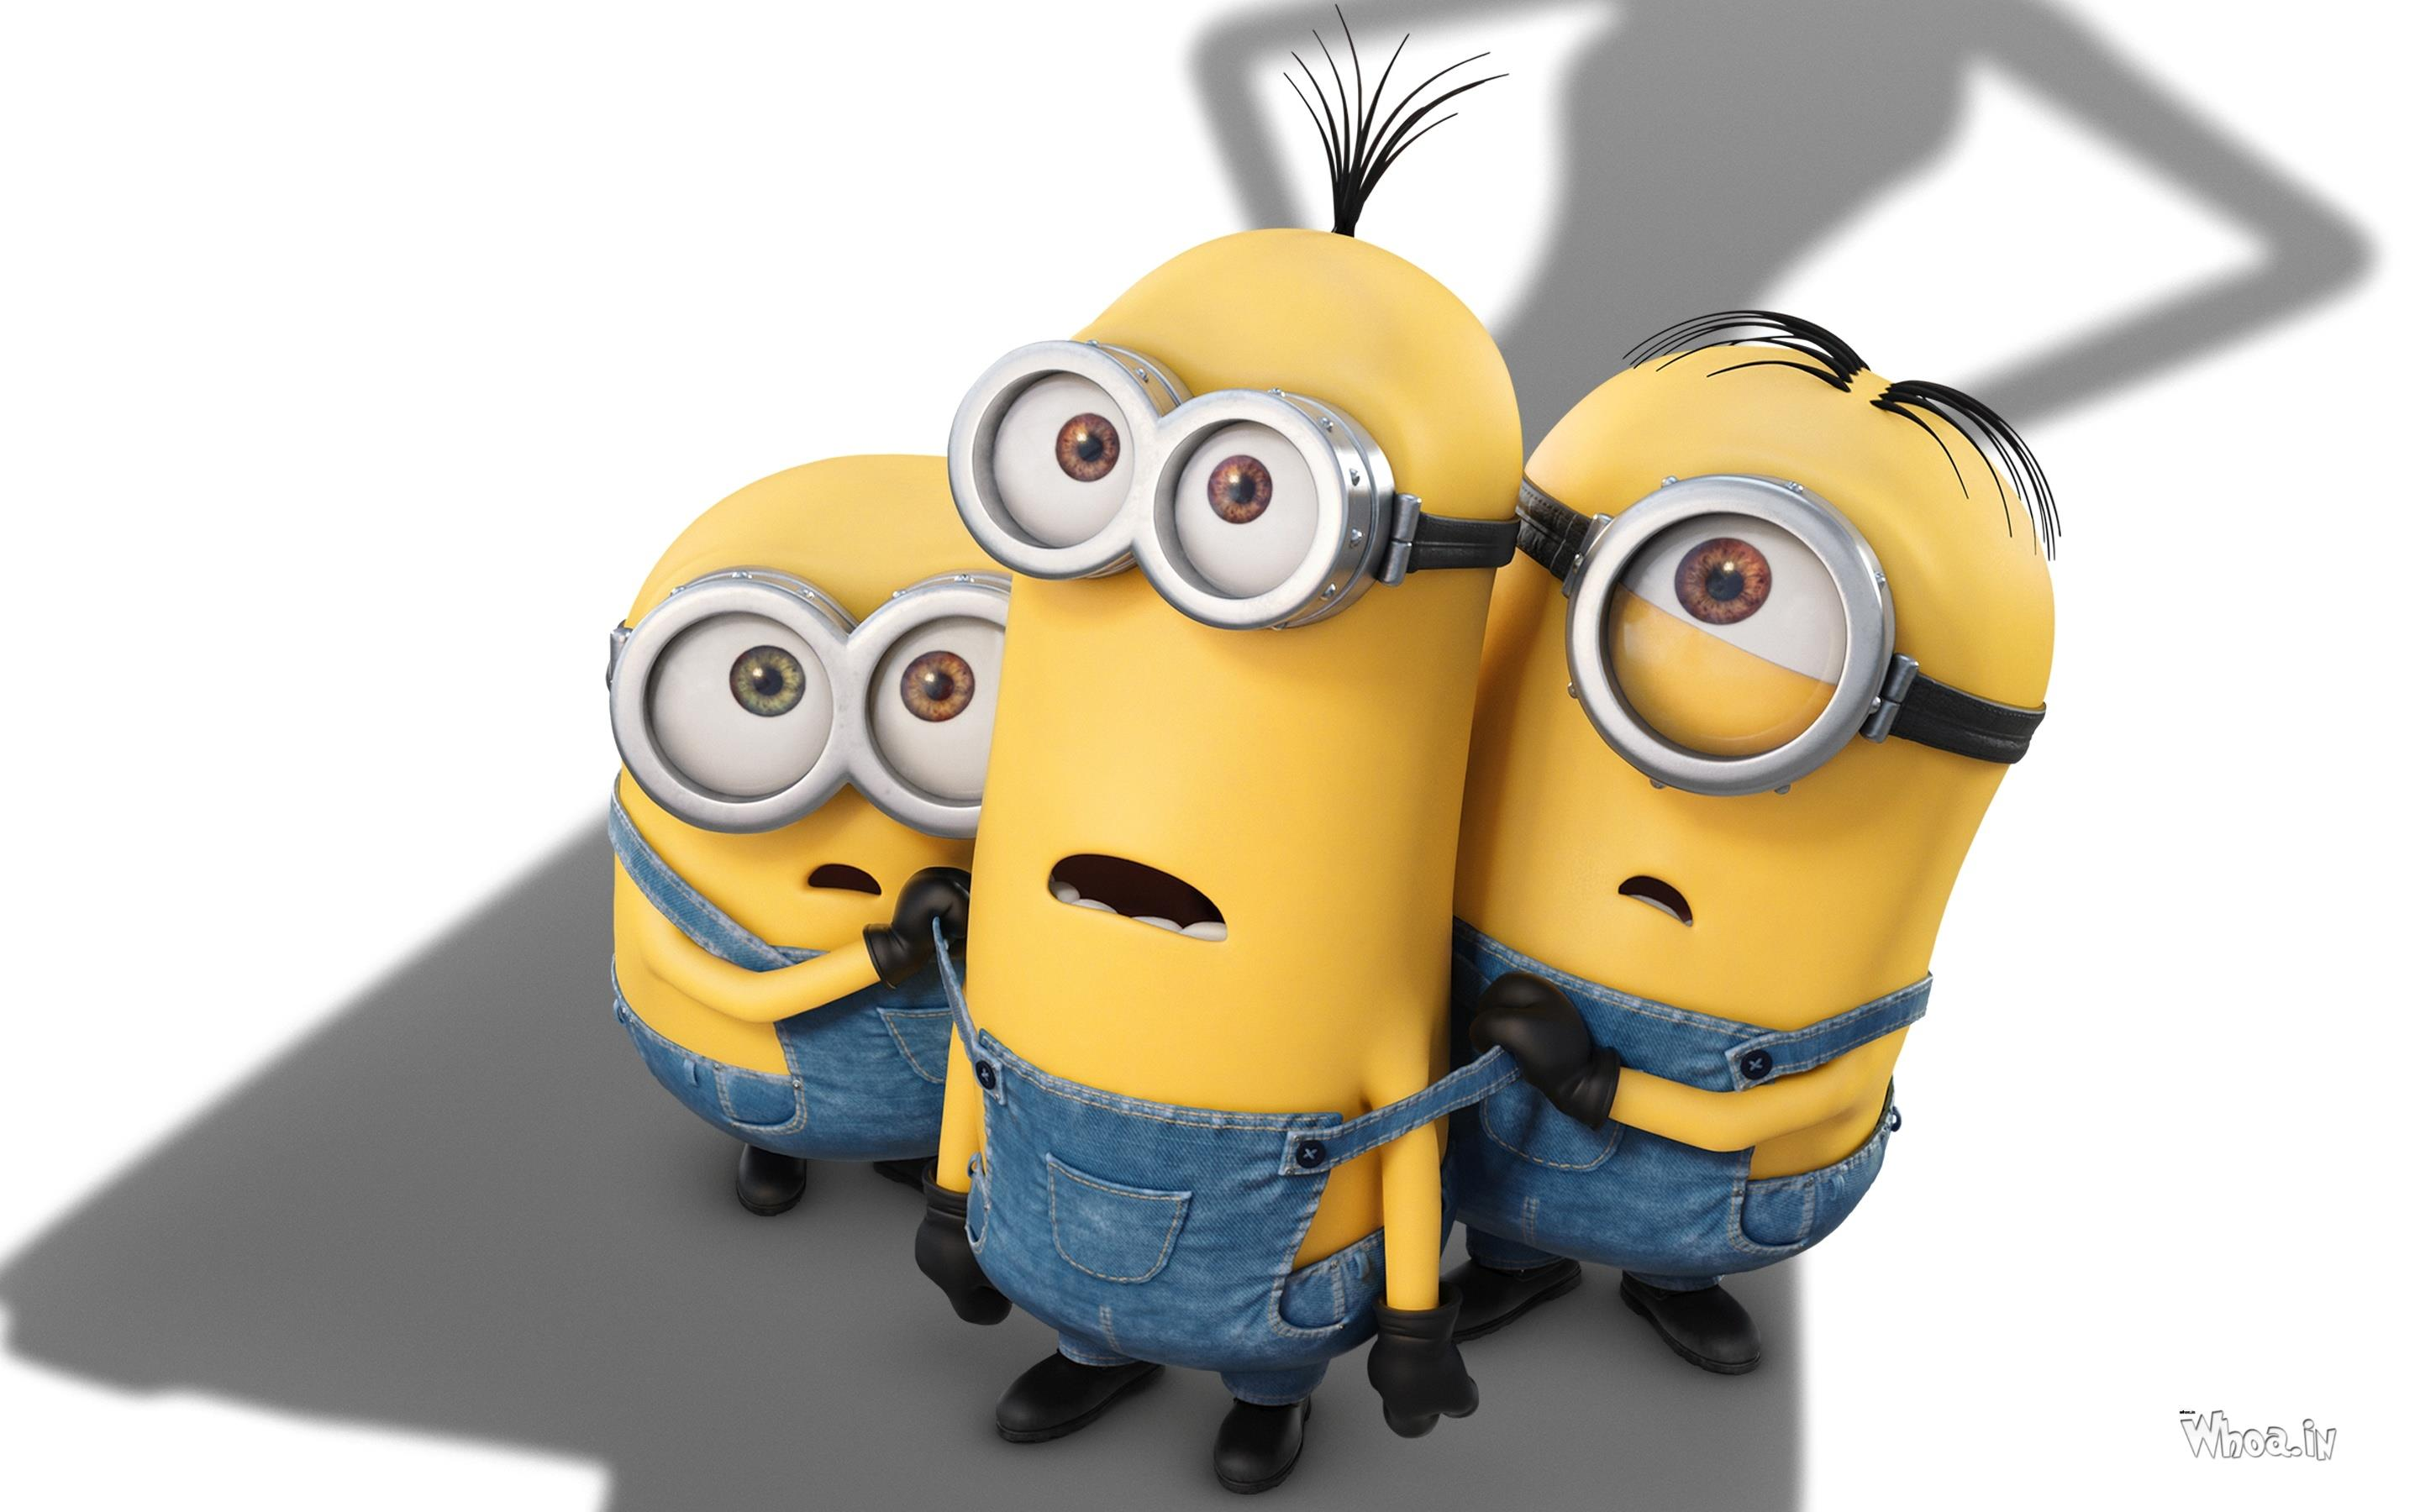 despicable me minions hd desktop wallpaper